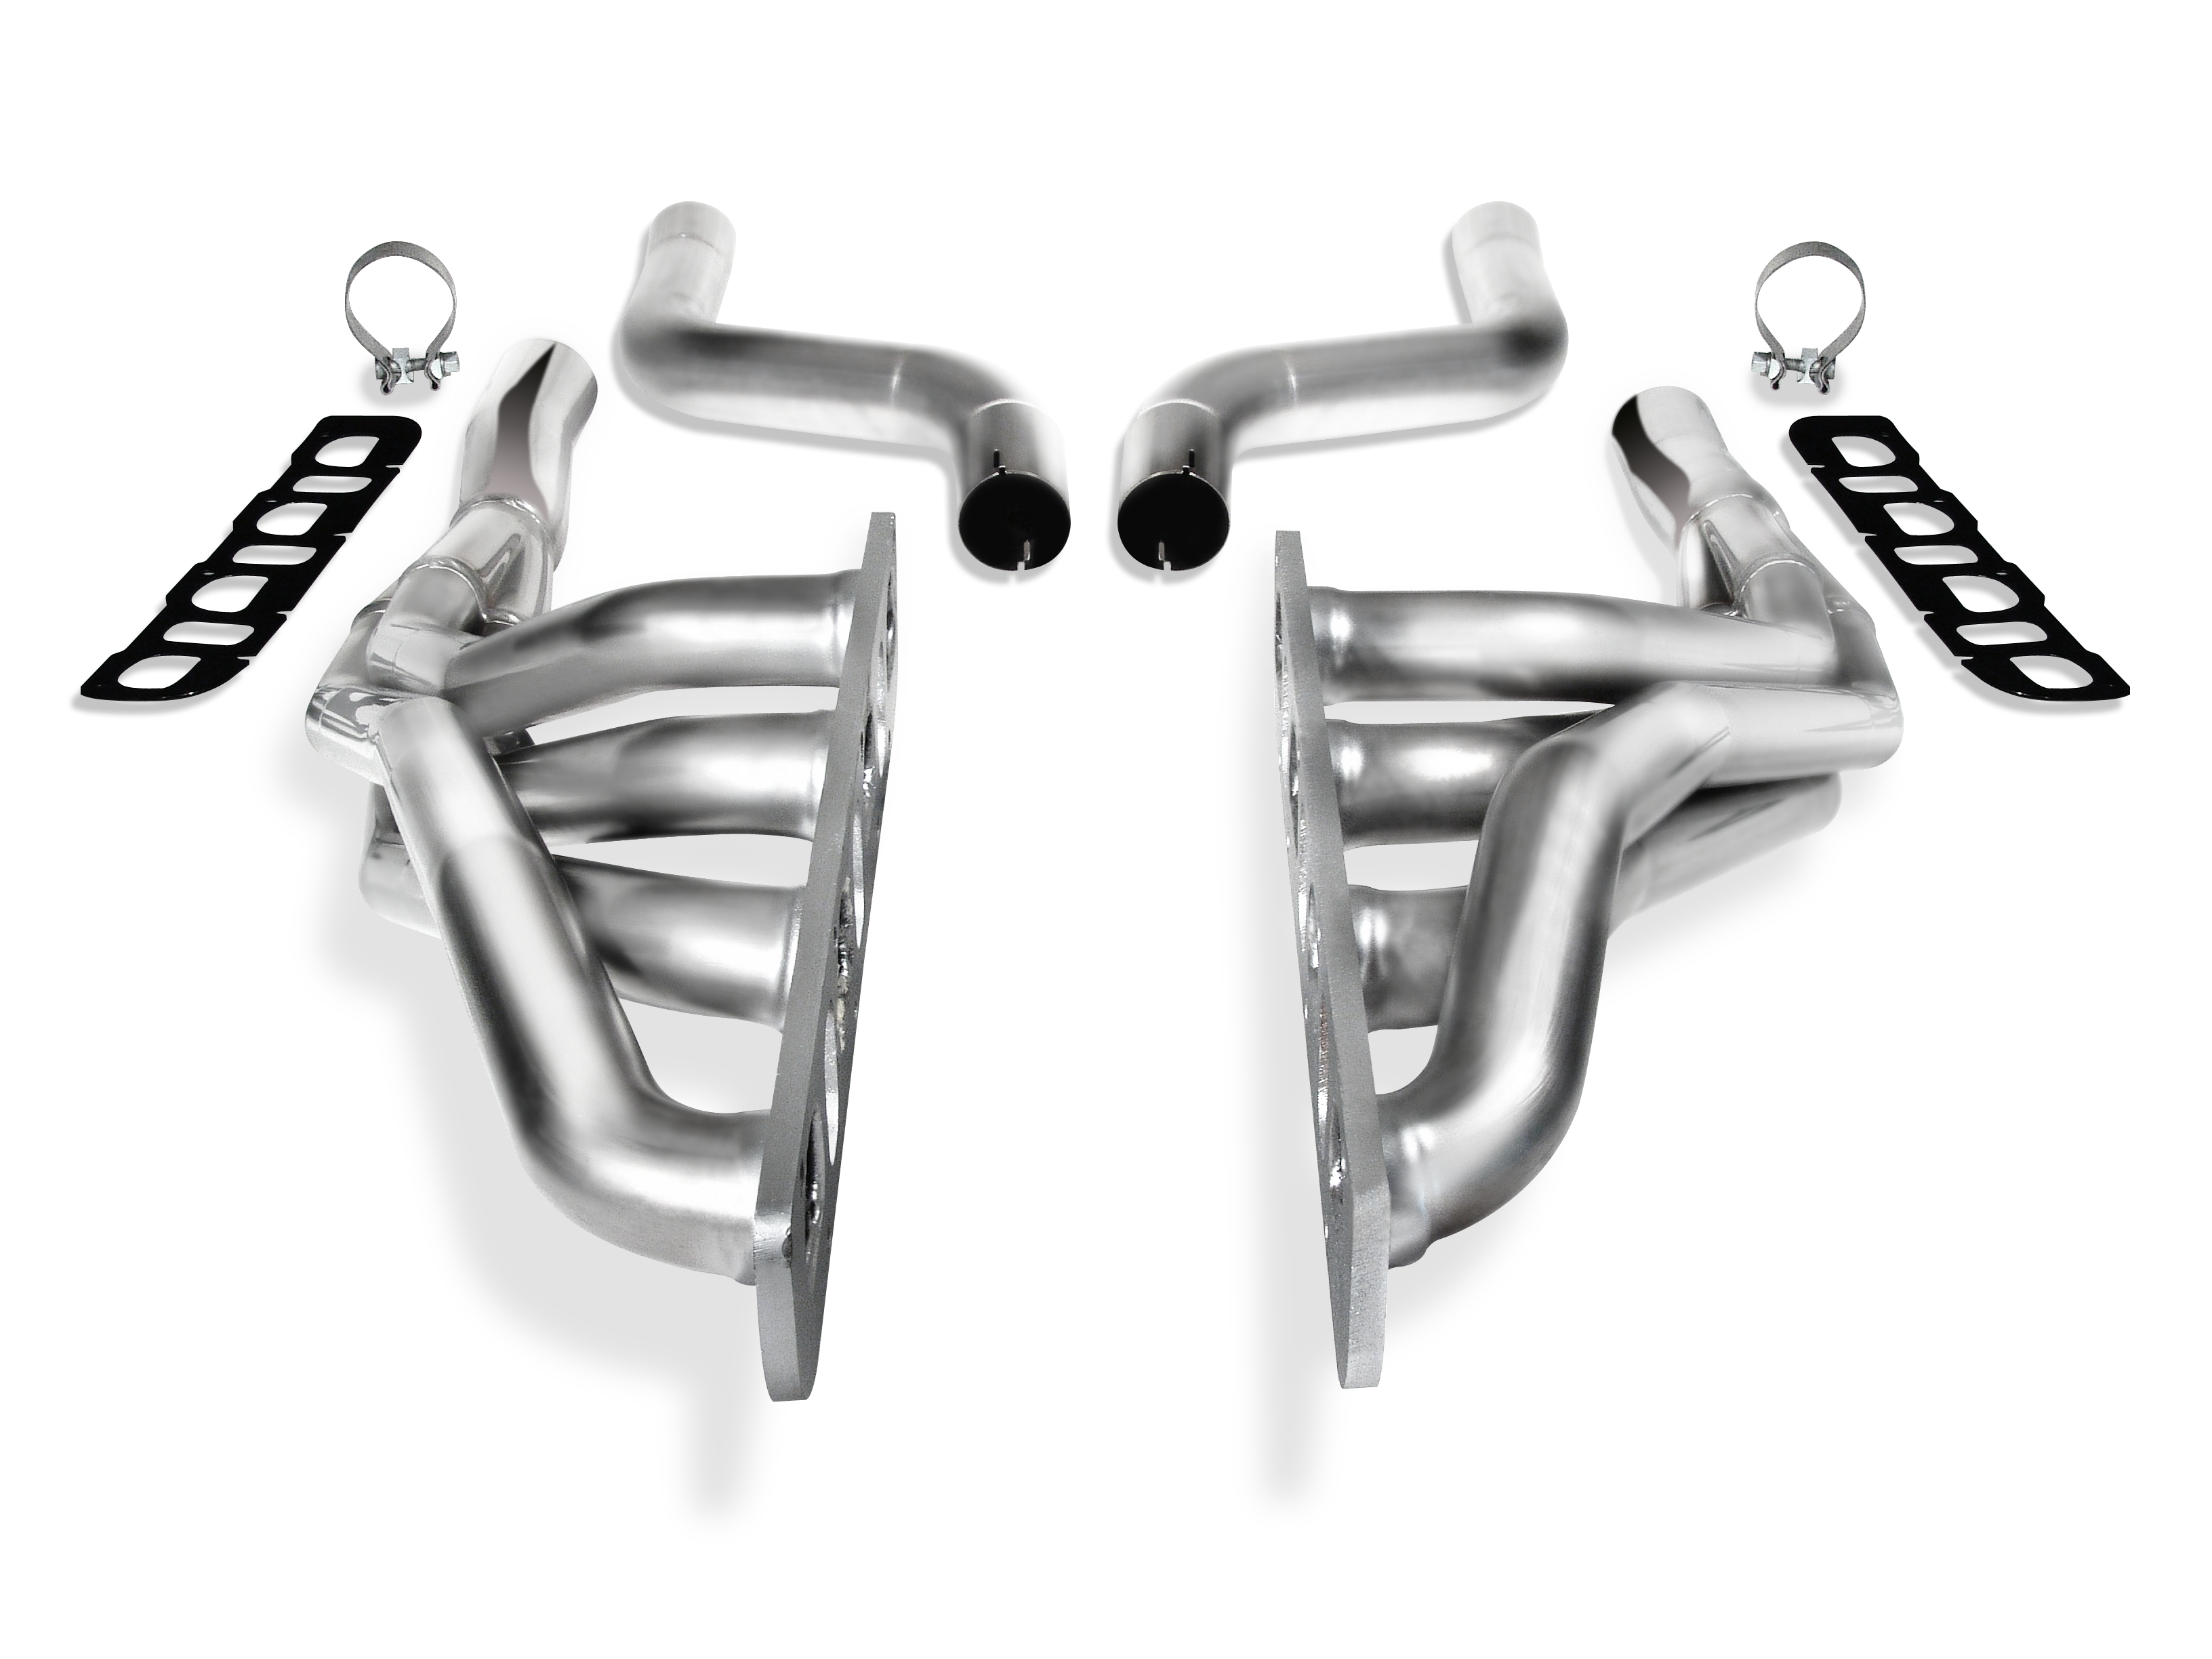 Dodge Magnum SRT-8 6.1l/6.4l V8 2008-2008 Borla Long Tube Exhaust Headers (offroad Only)